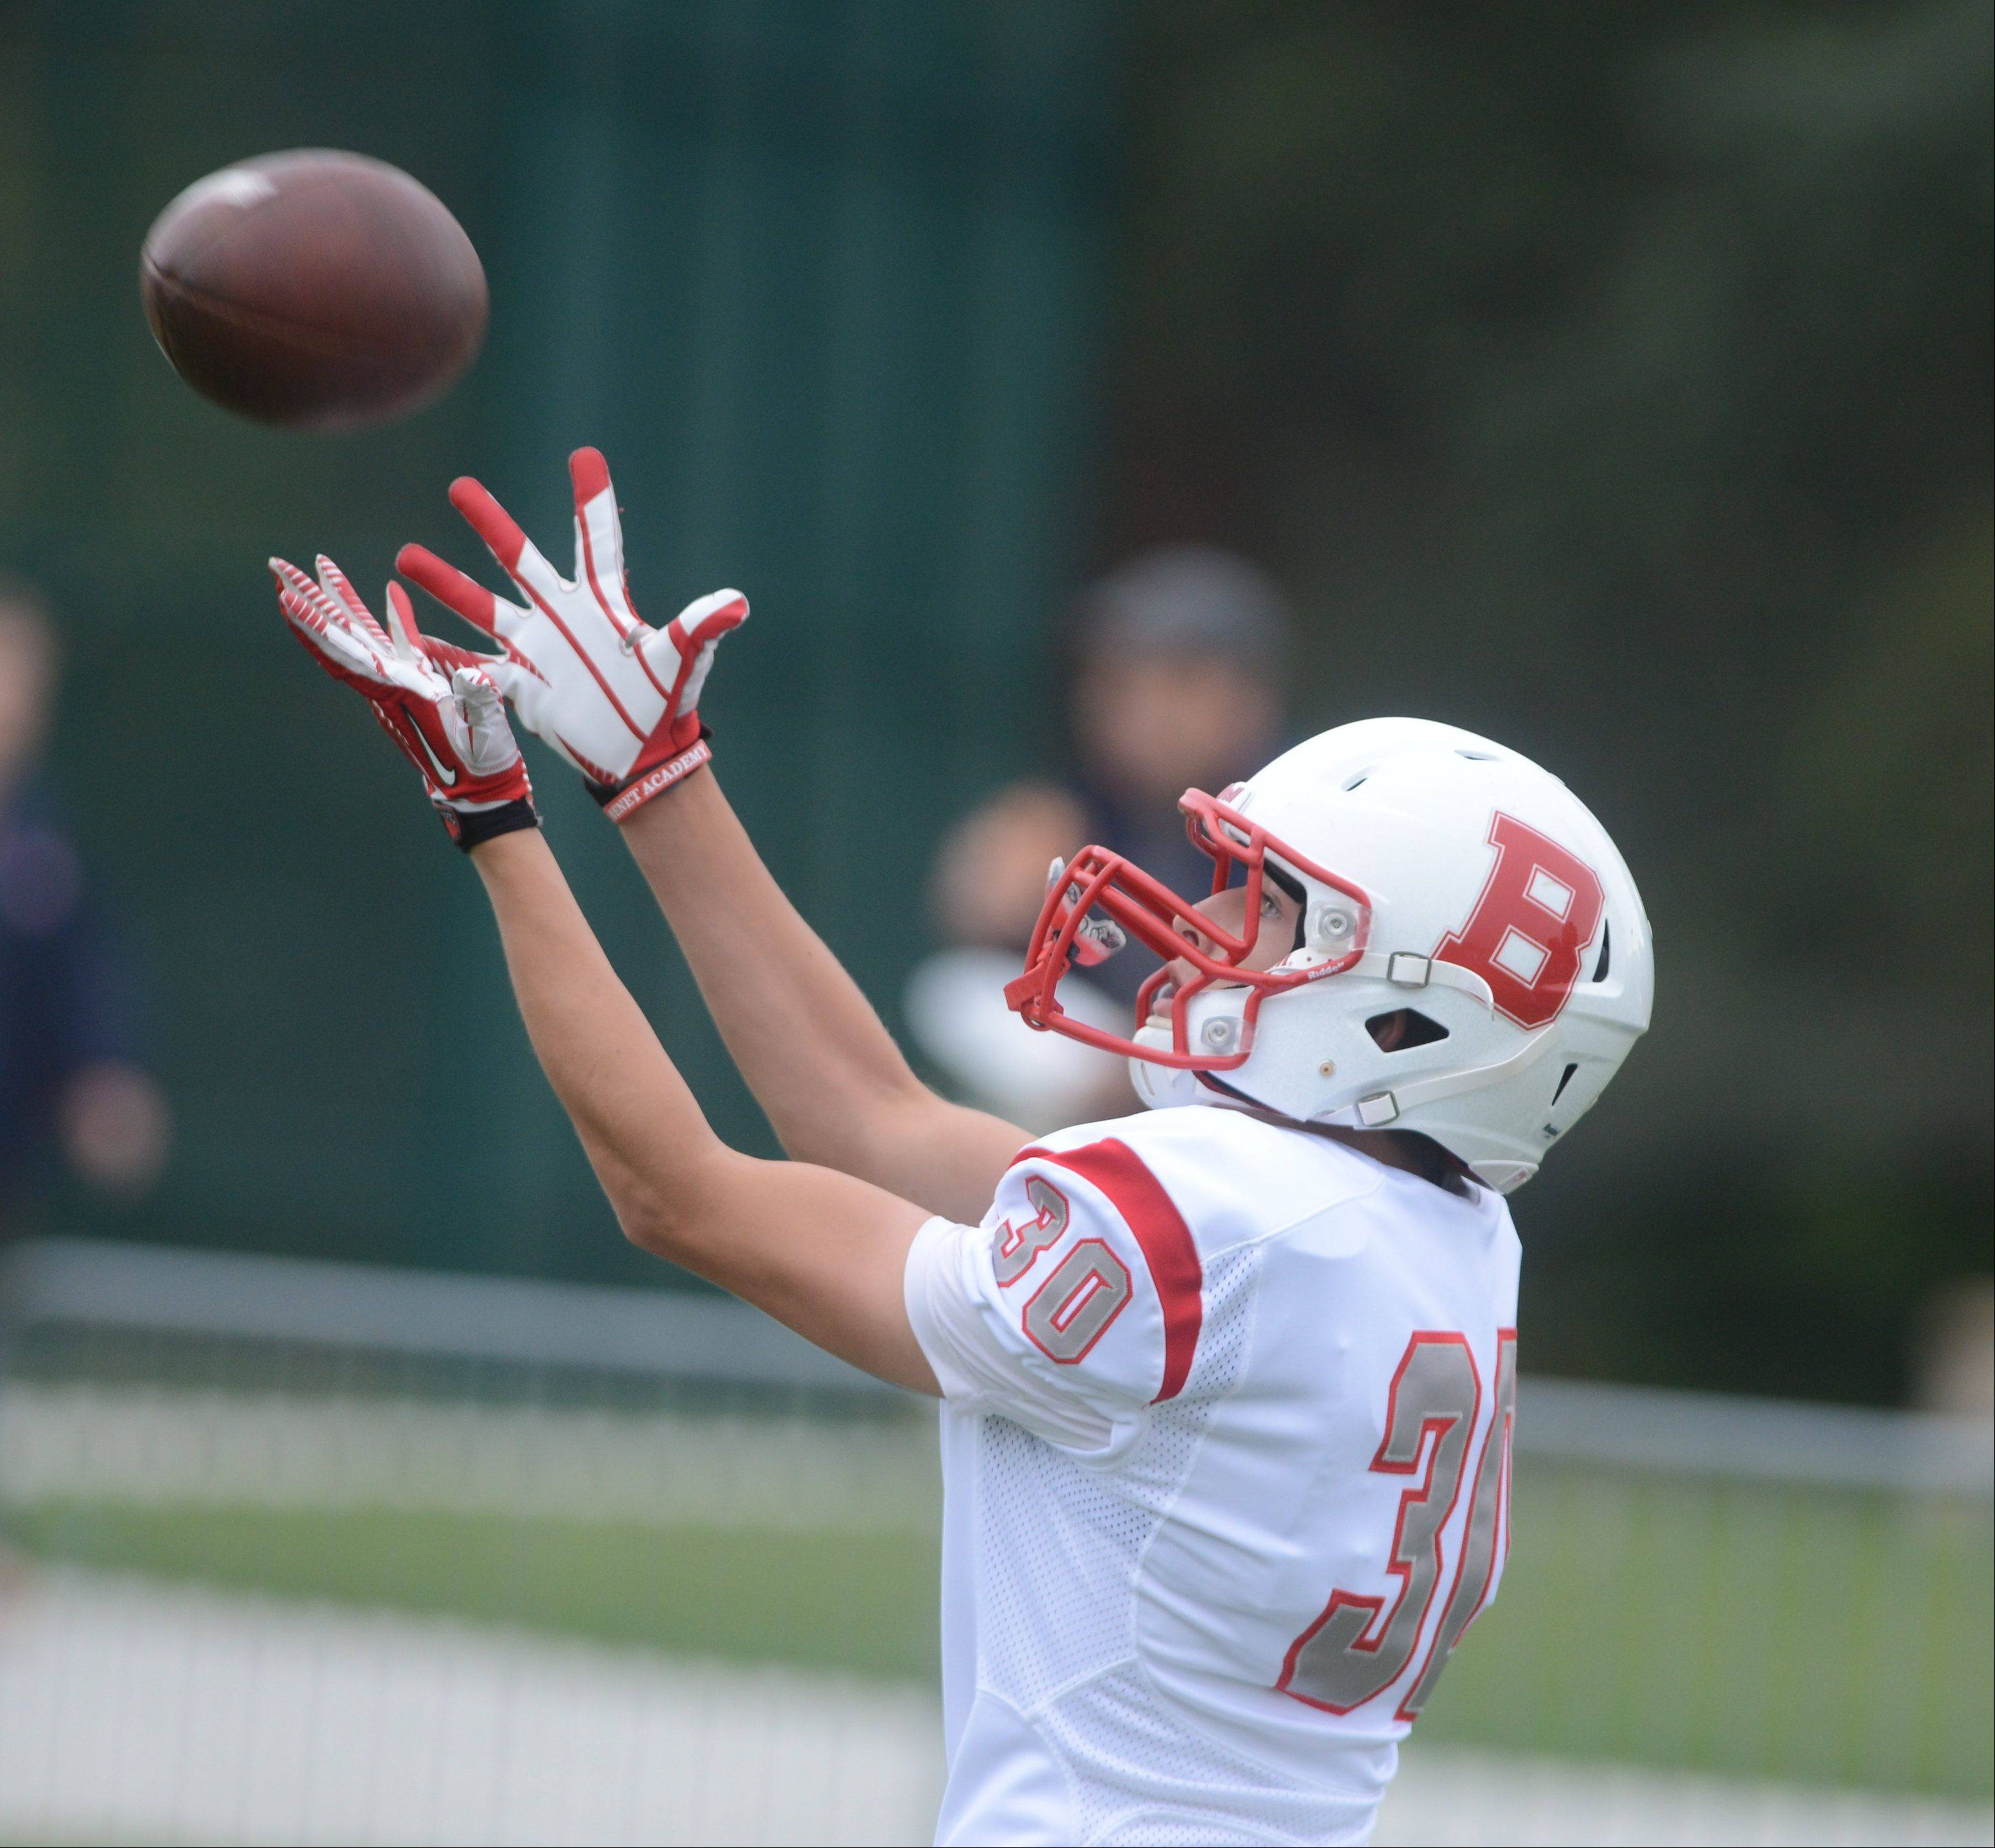 Week-6- Photos from the Benet Academy at Nazareth Academy football game on Saturday, October 12 at Nazareth Academy in LaGrange Park.